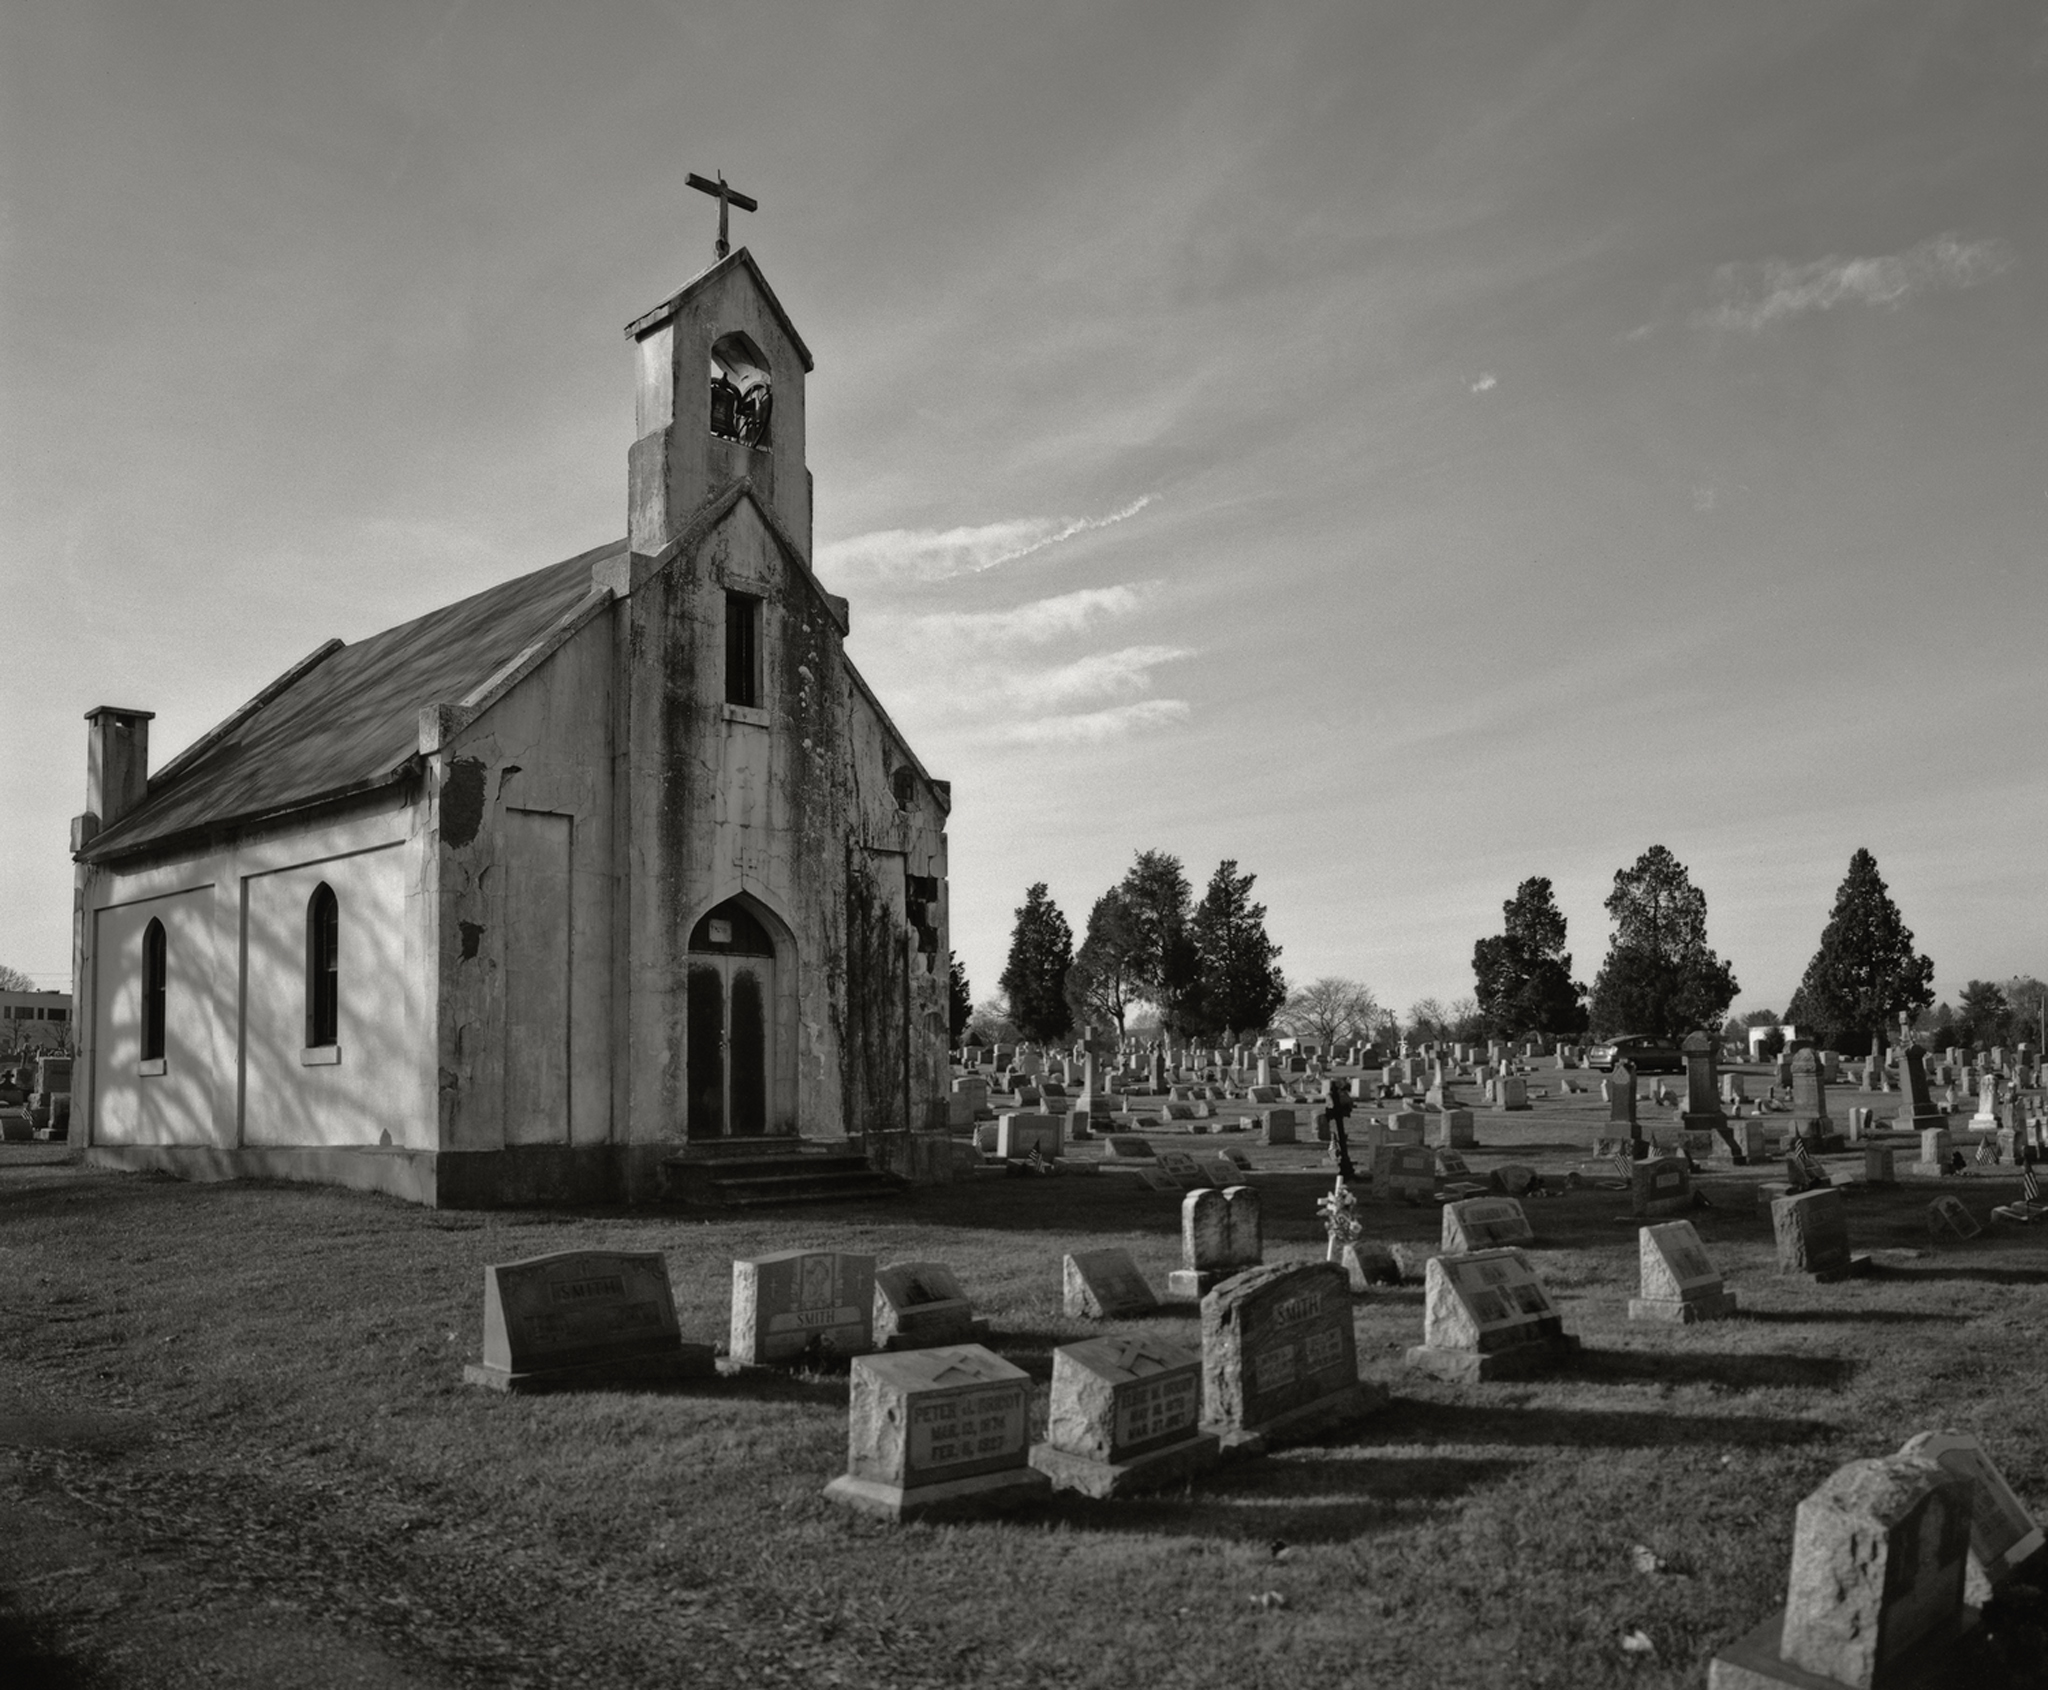 4x5_for_365_project_0330_Holy_Sepulchre_Cemetery_Chapel.jpg